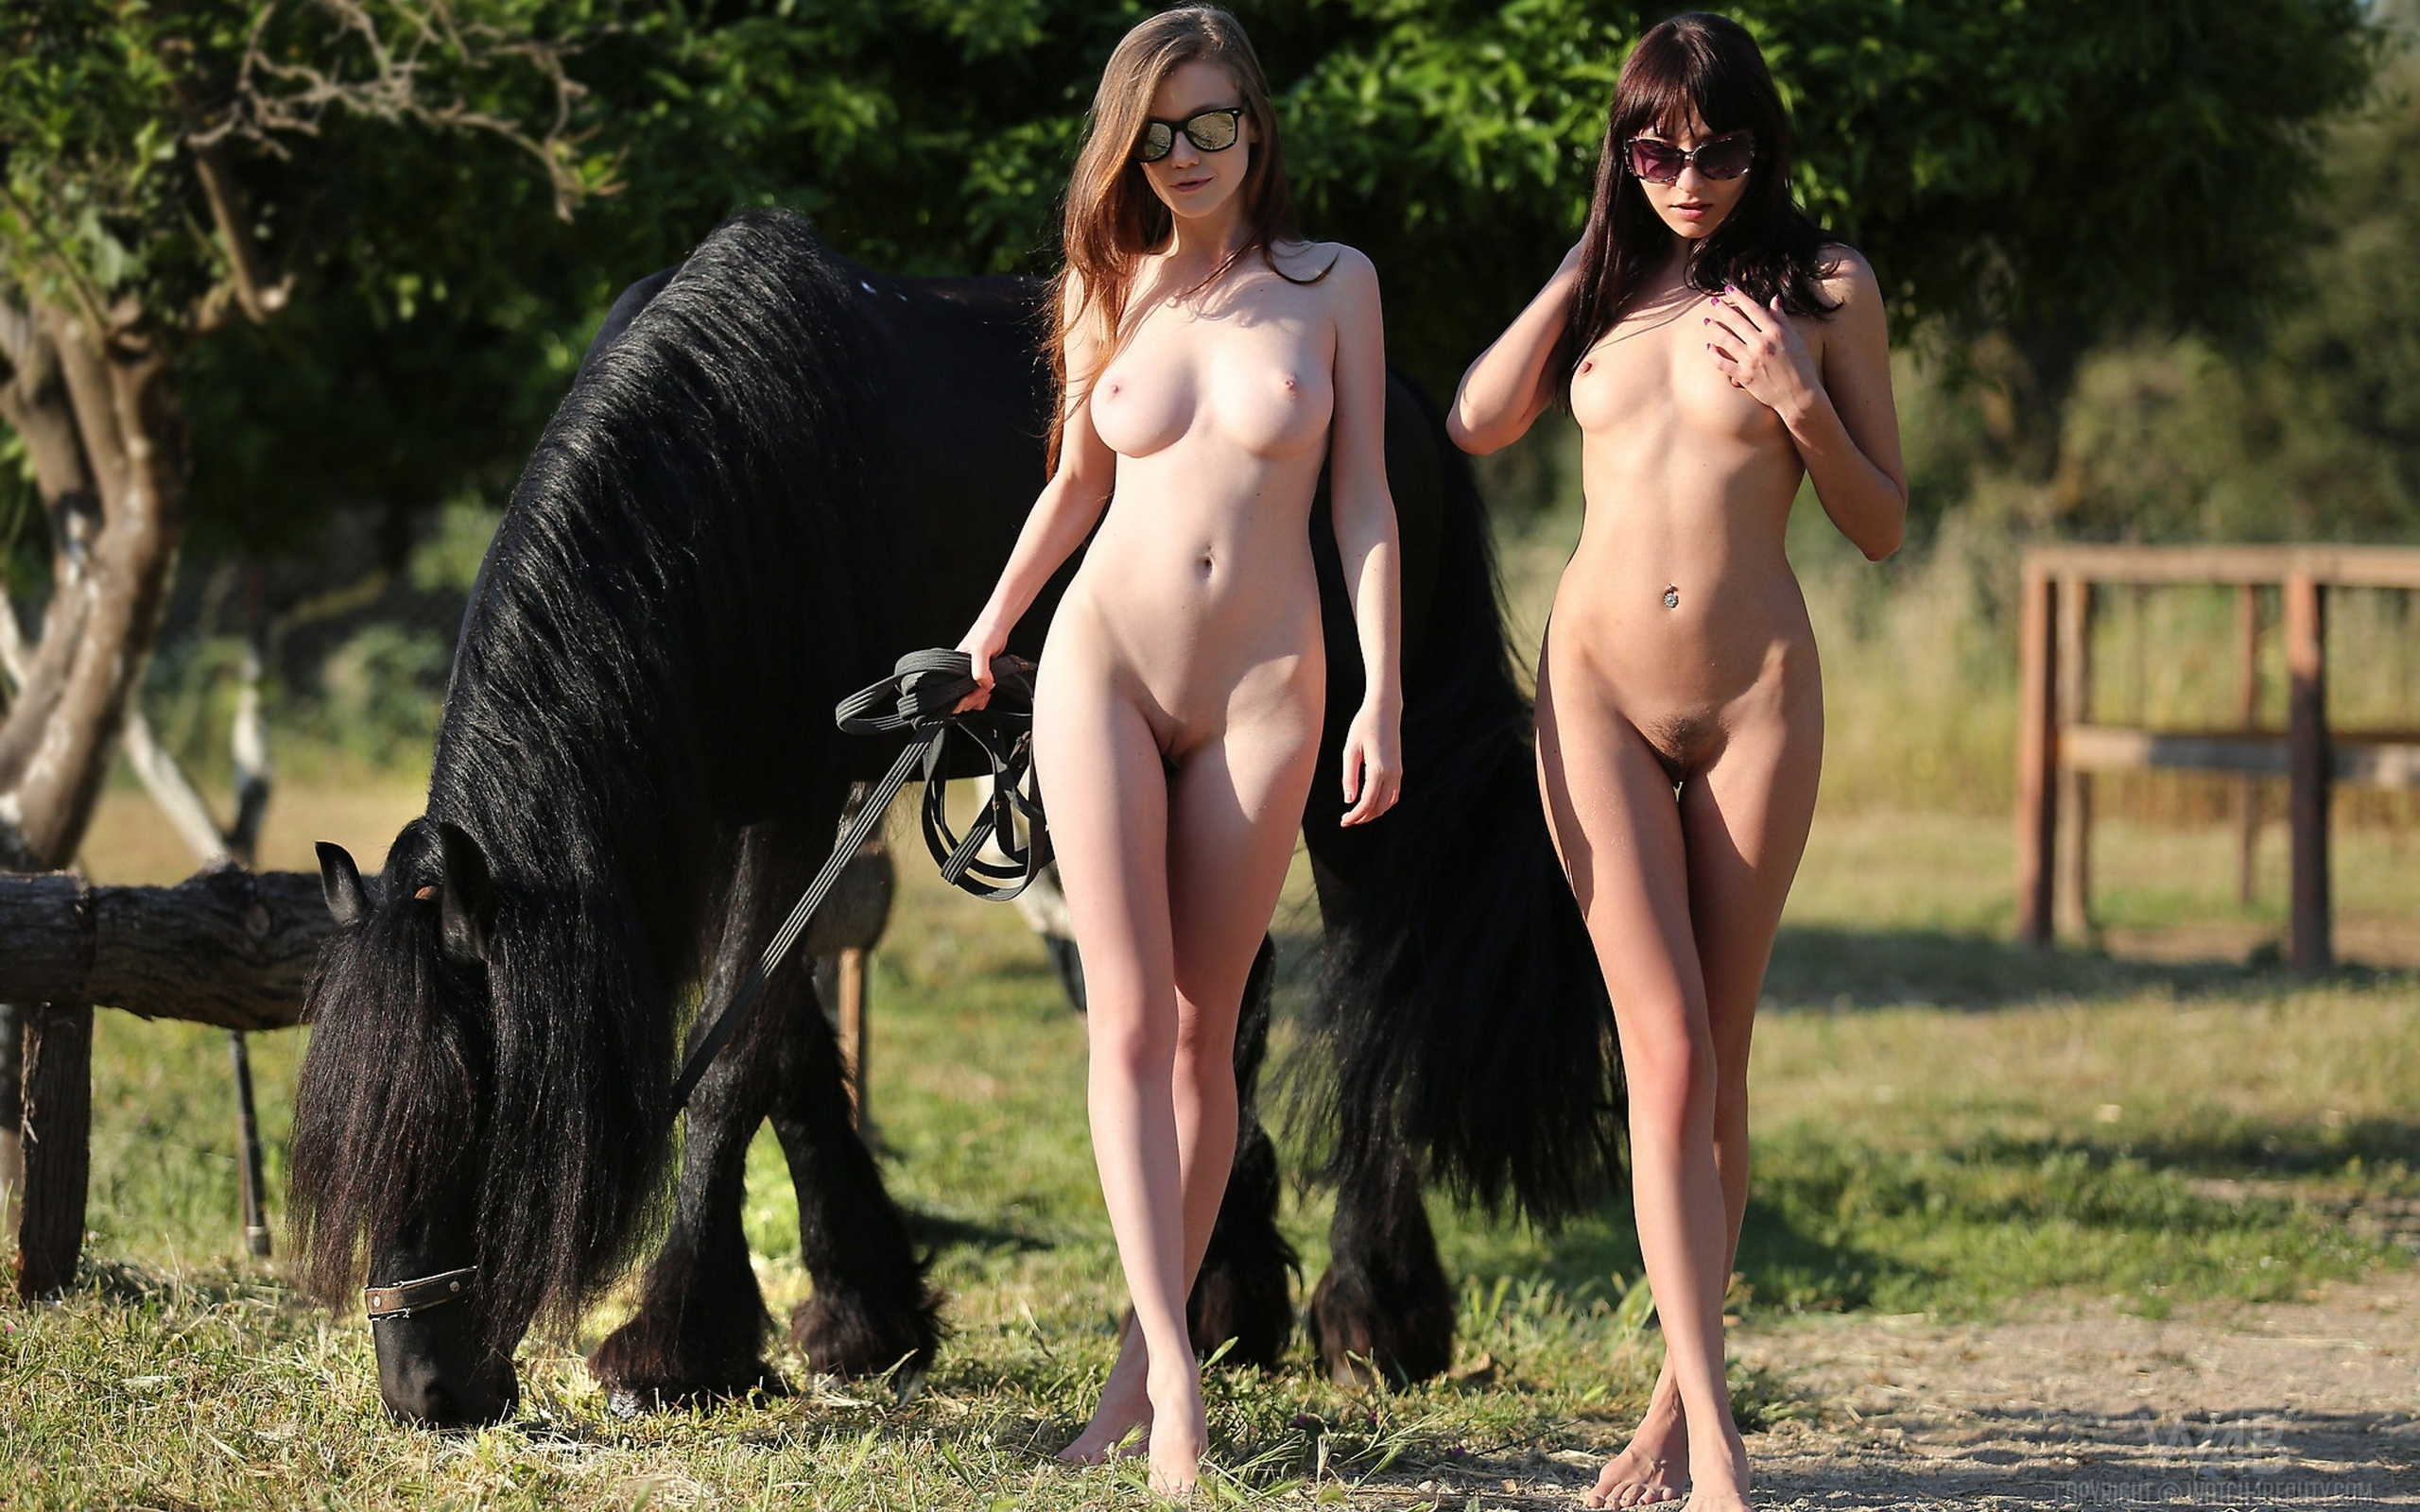 Naked girls newfoundland #14